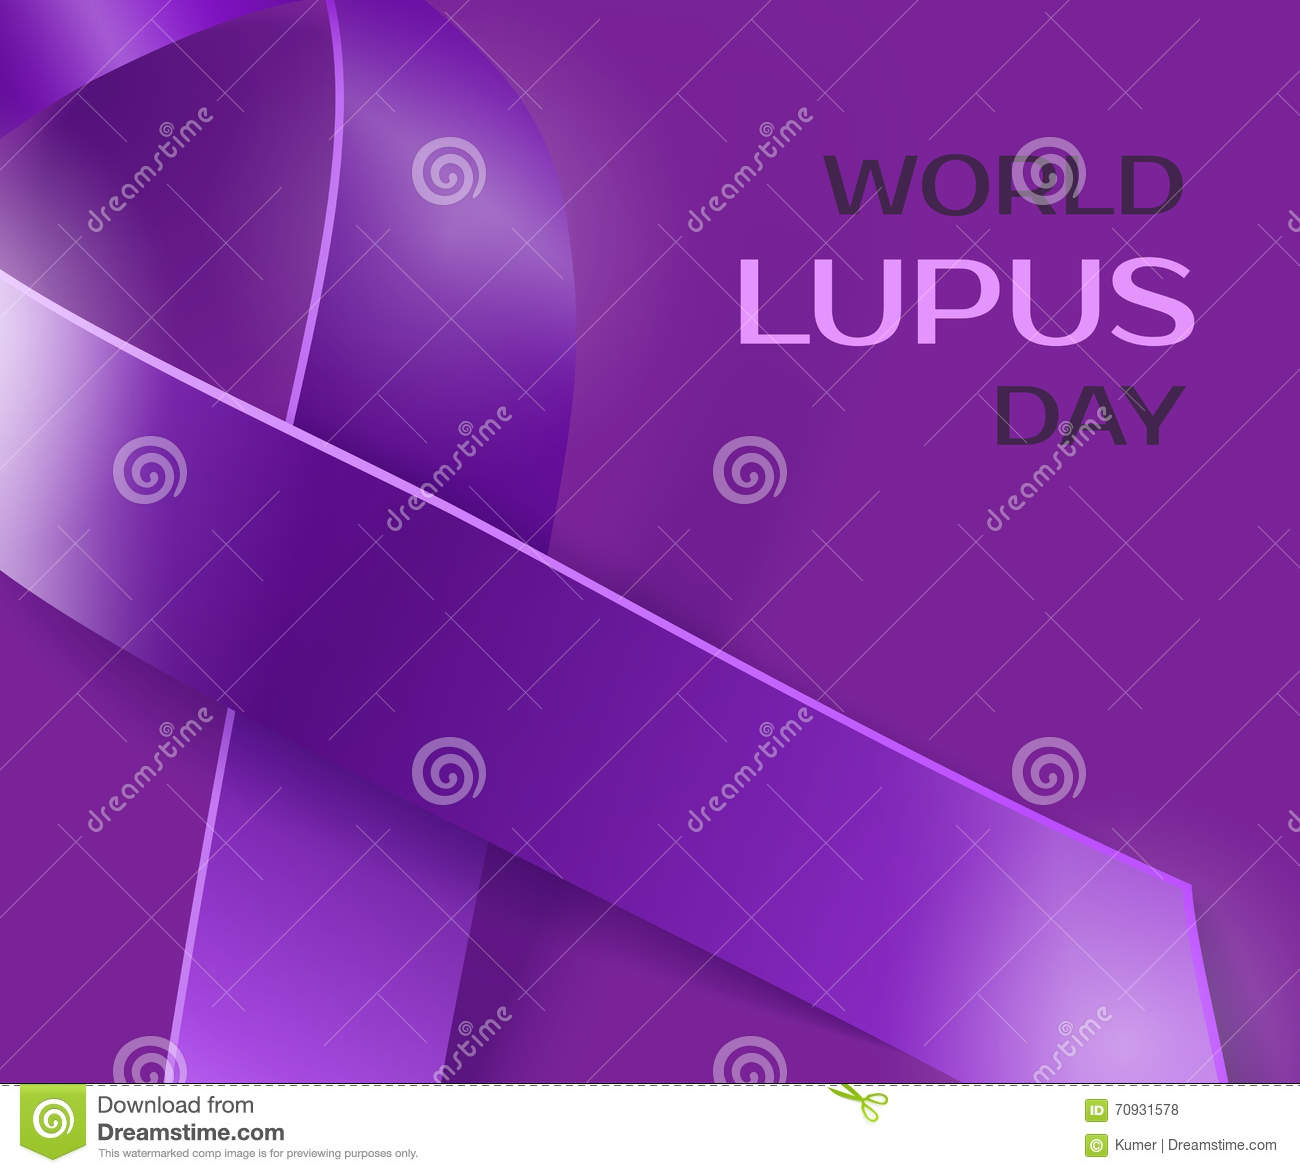 Purple lupus awareness ribbon background stock illustration purple lupus awareness ribbon background biocorpaavc Image collections